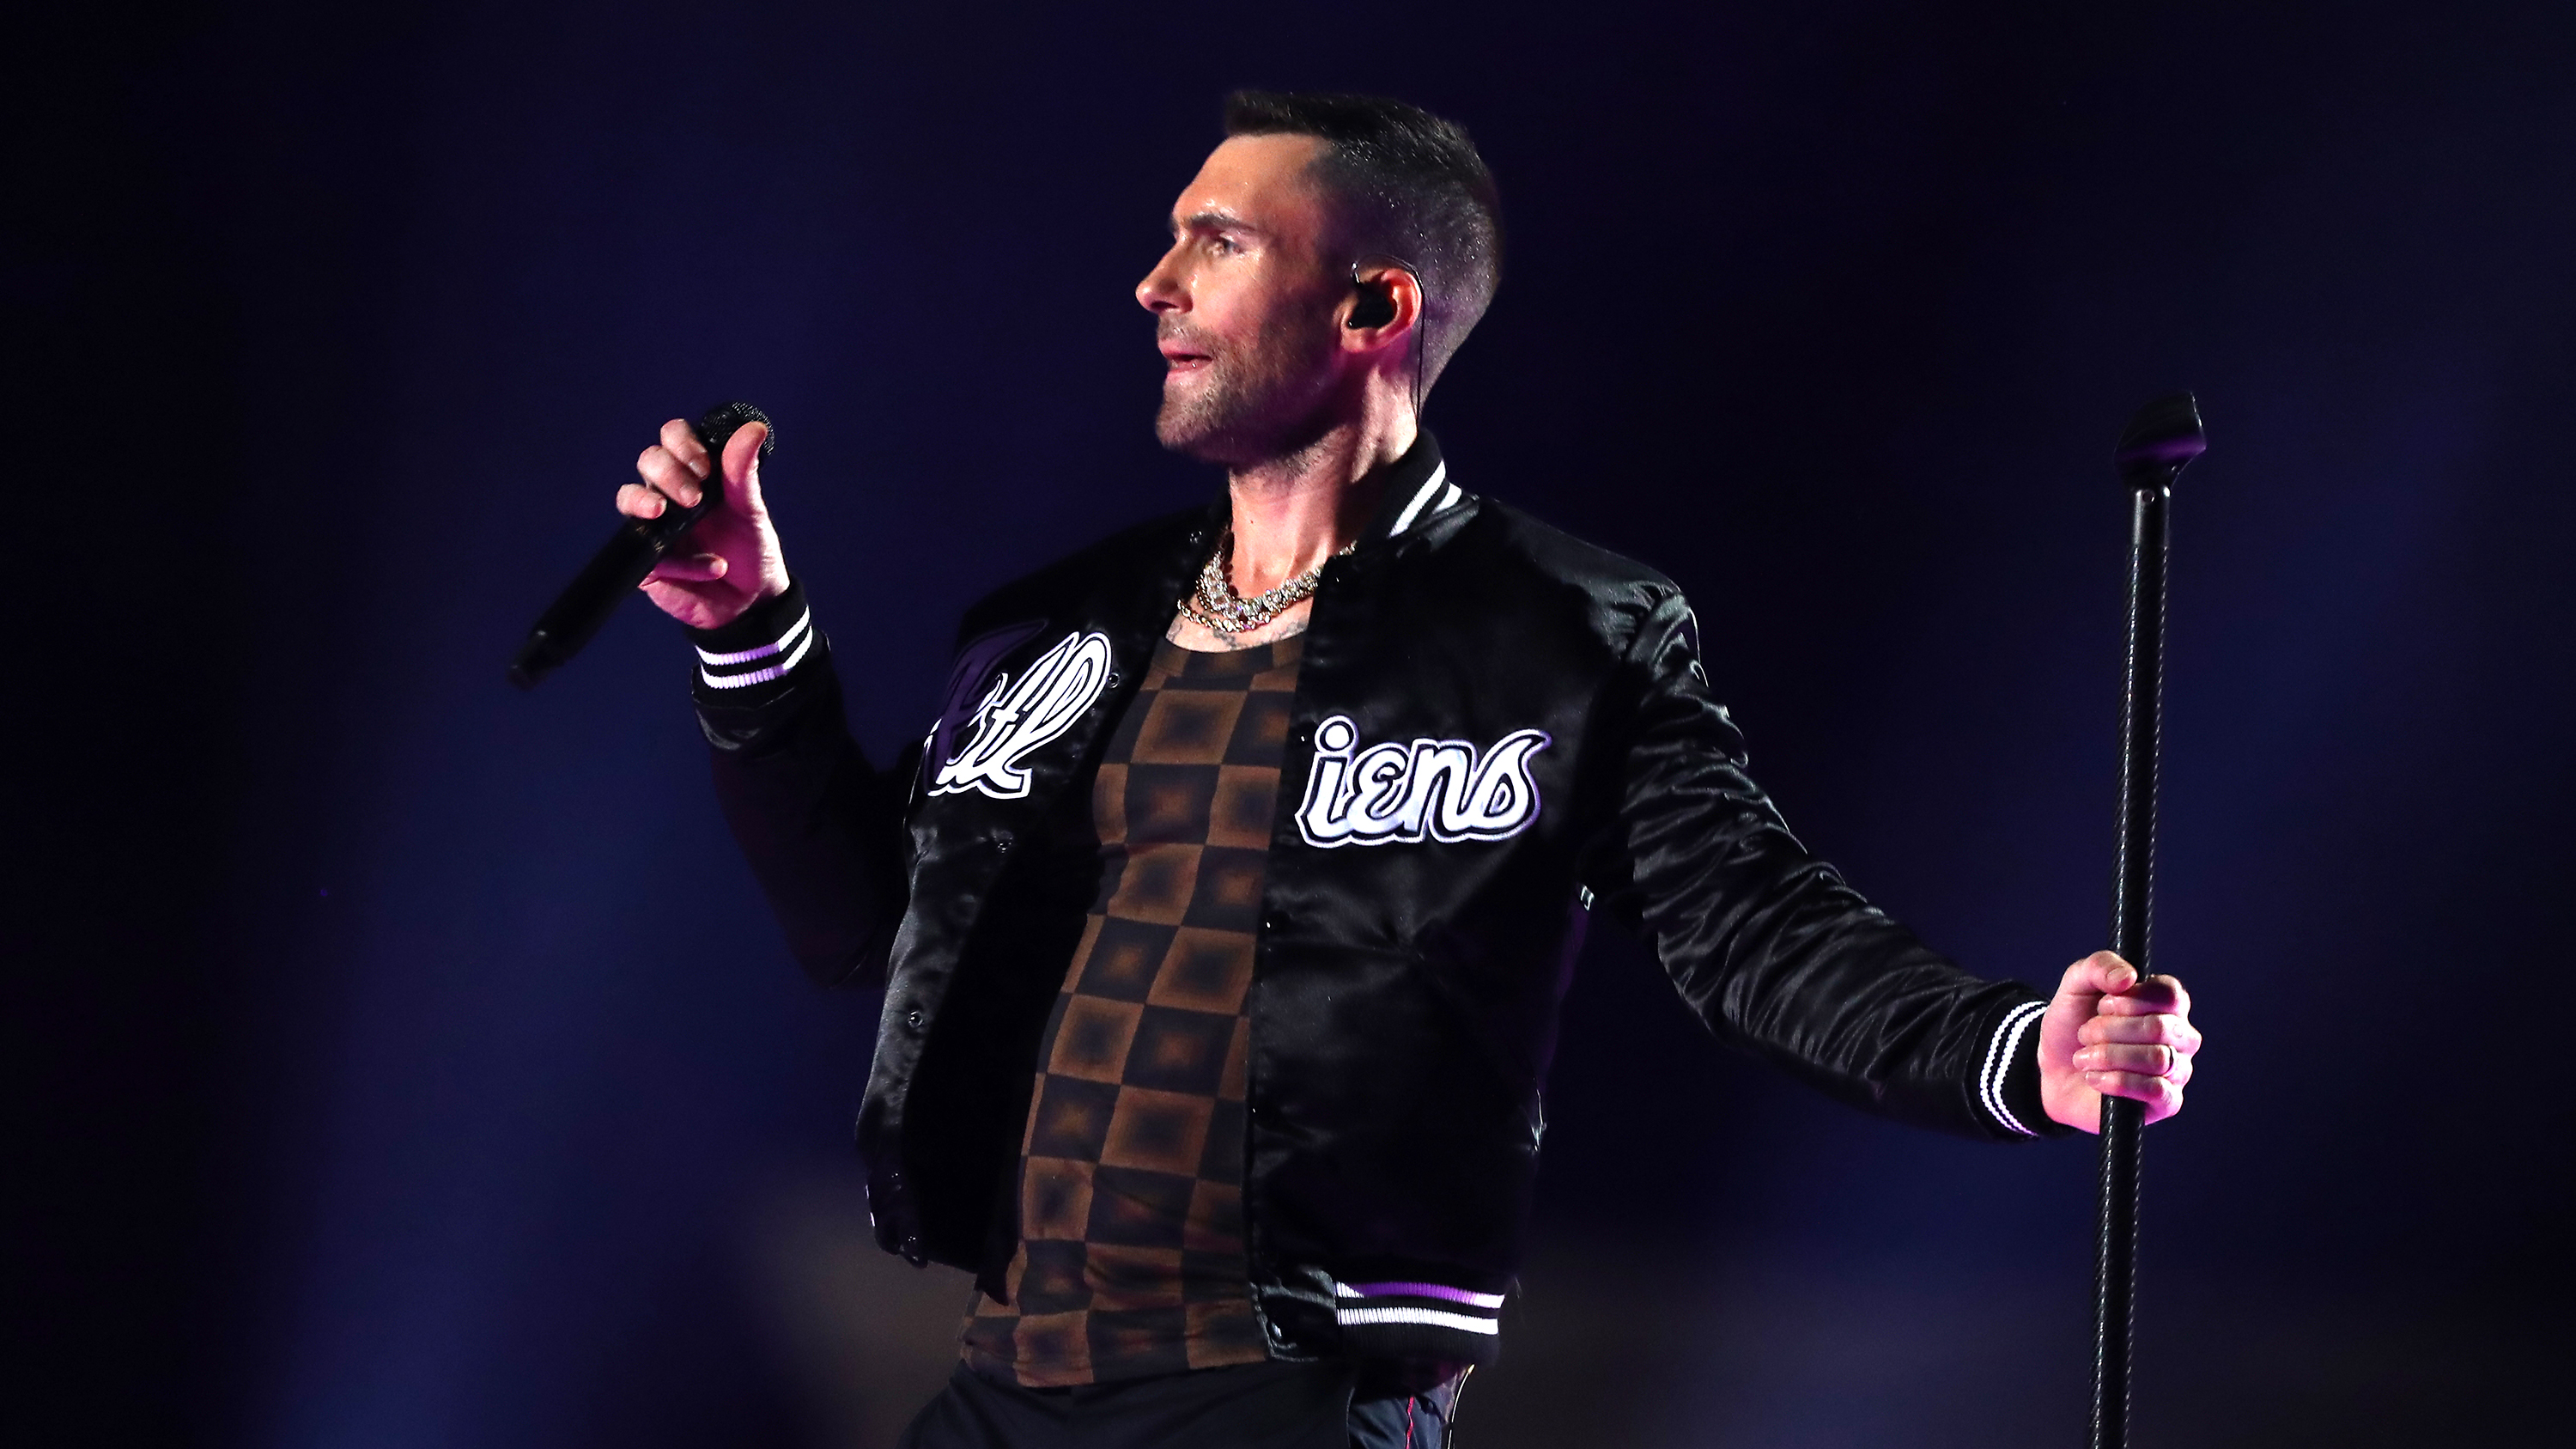 Watch out, Adam Levine might give you a parking ticket